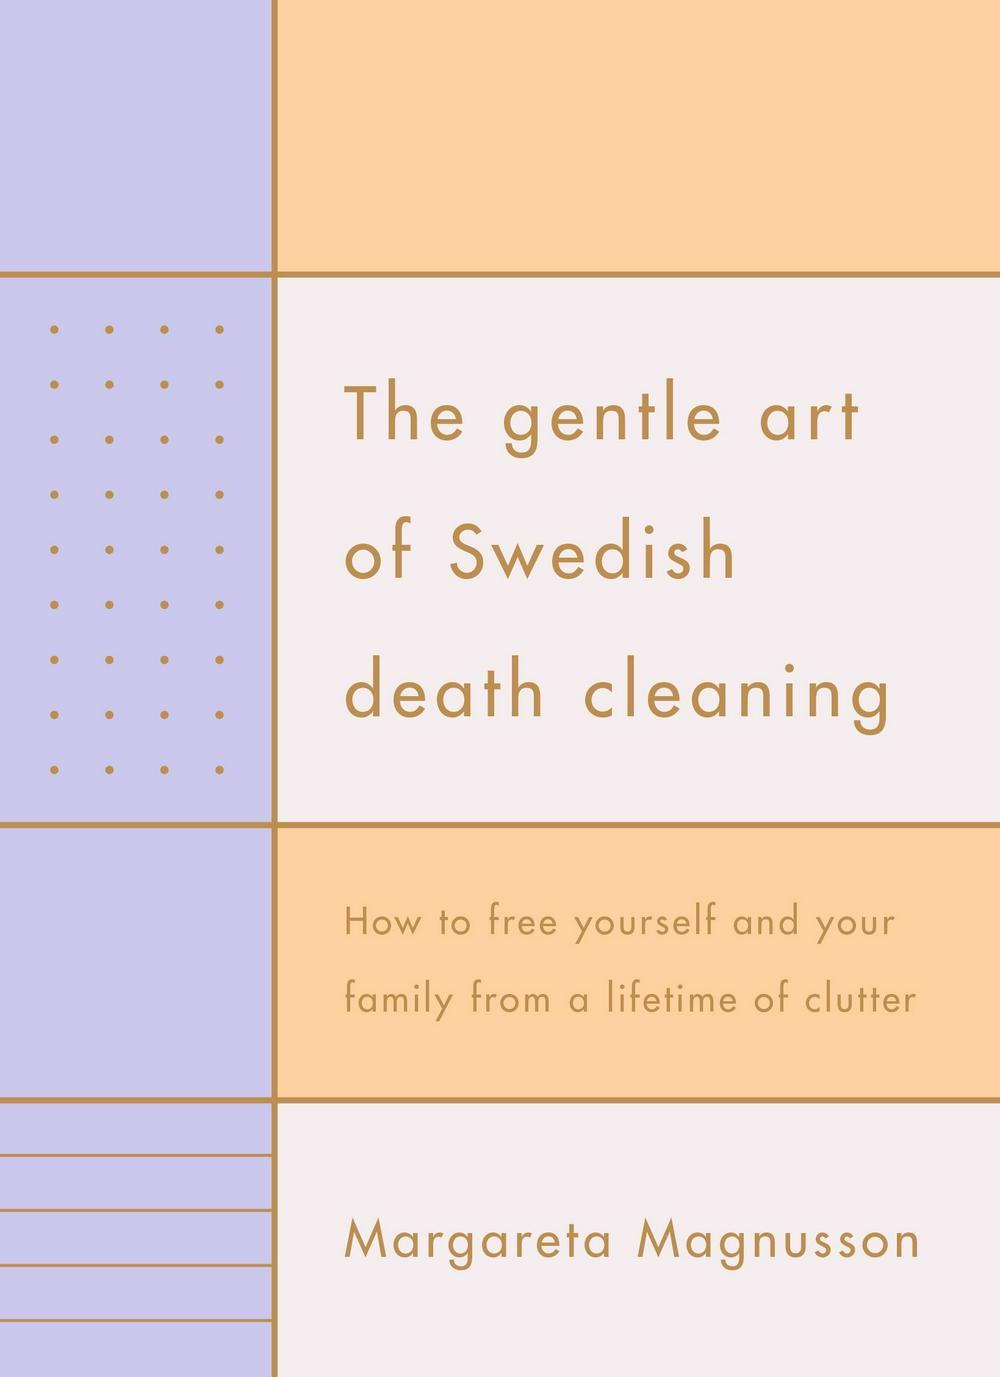 The Gentle Art of Swedish Death Cleaning by Margareta Magnusson, ISBN: 9781925322330